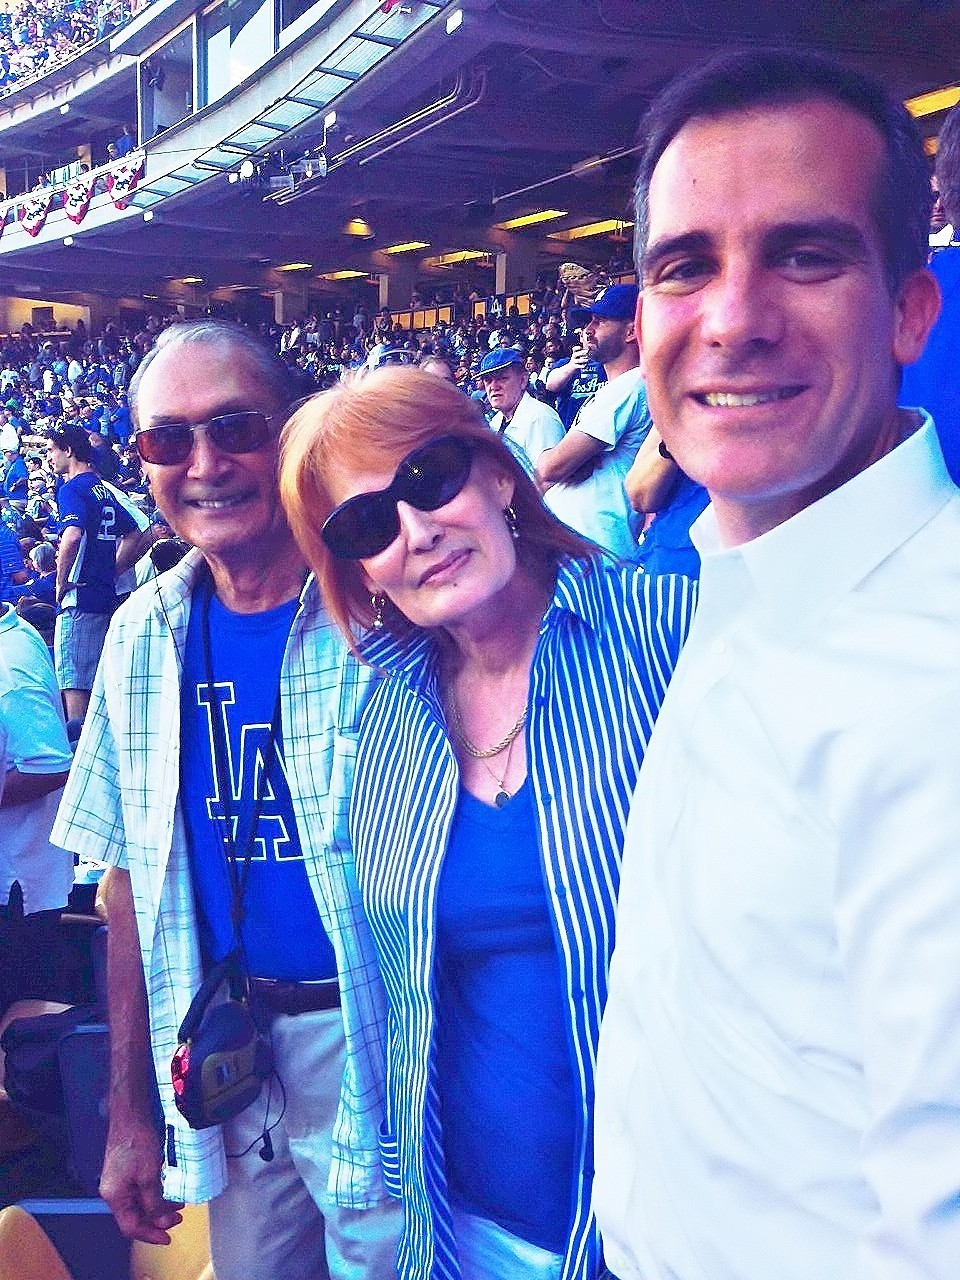 Suzanne Lewis poses with her father, Louis Avila, and L.A. Mayor Eric Garcetti at a Dodgers game in 2015.